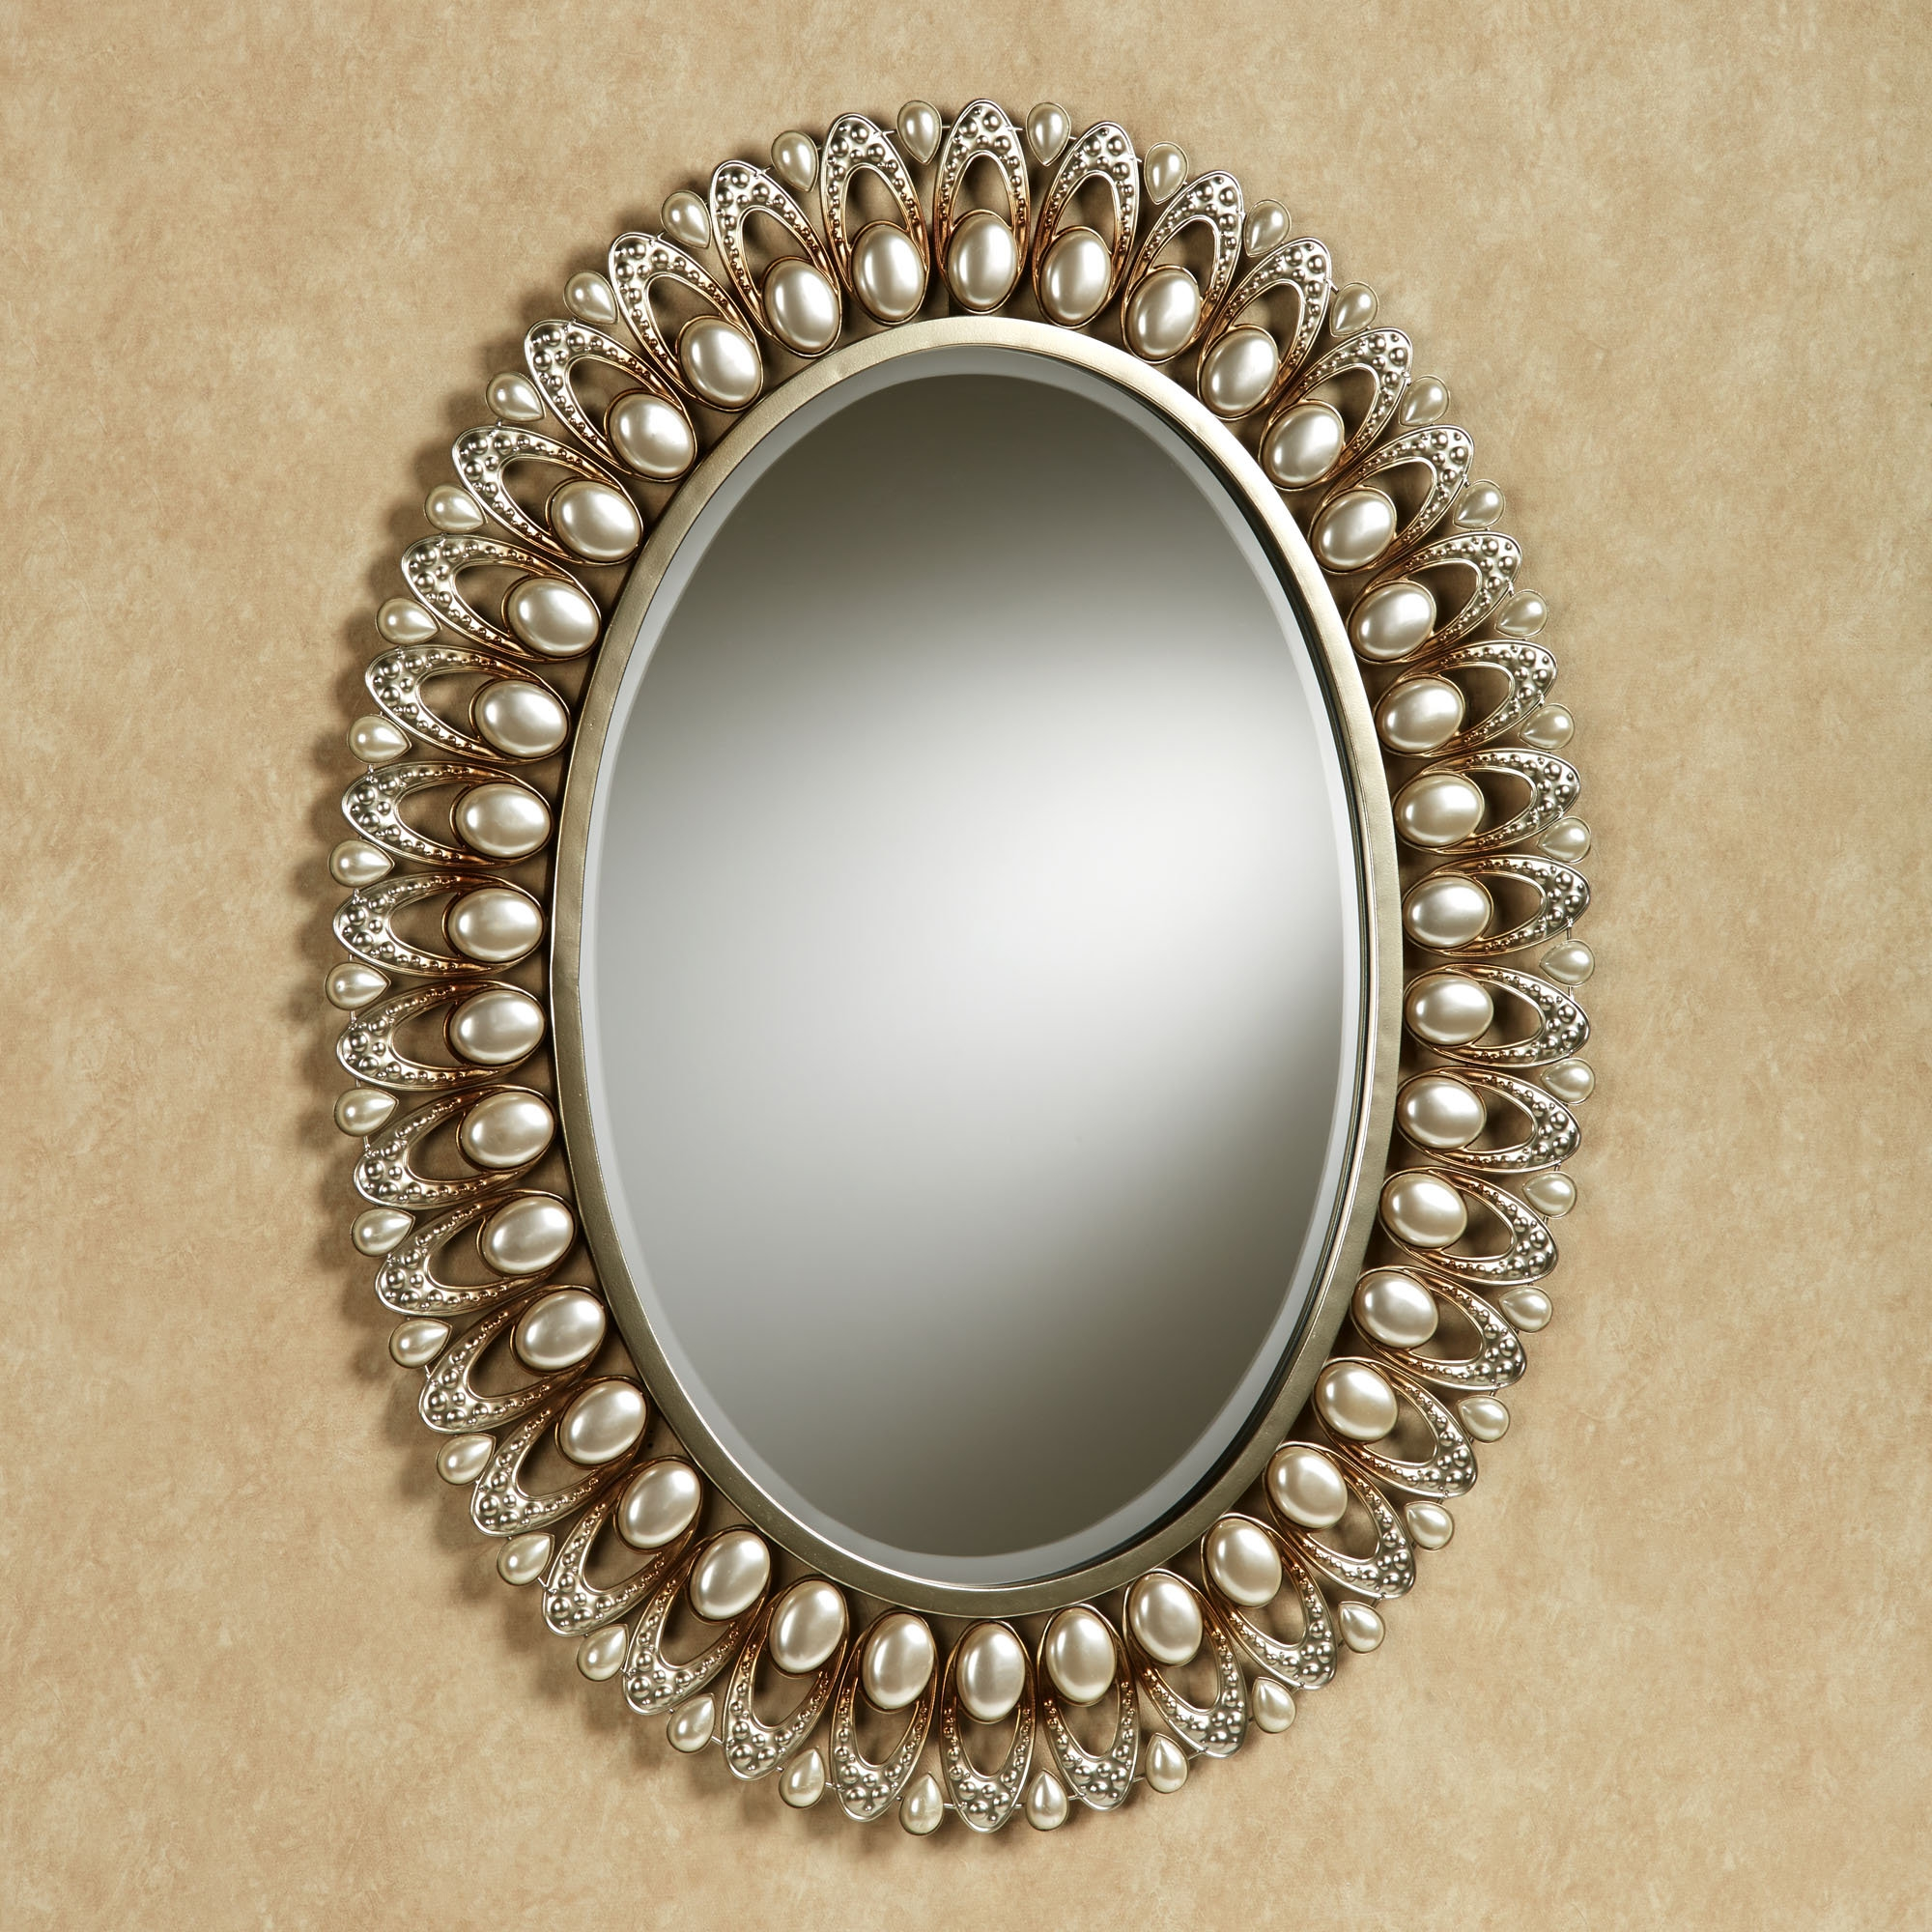 Julietta Pearl Oval Wall Mirror For Oval Mirrors For Walls (Image 4 of 15)